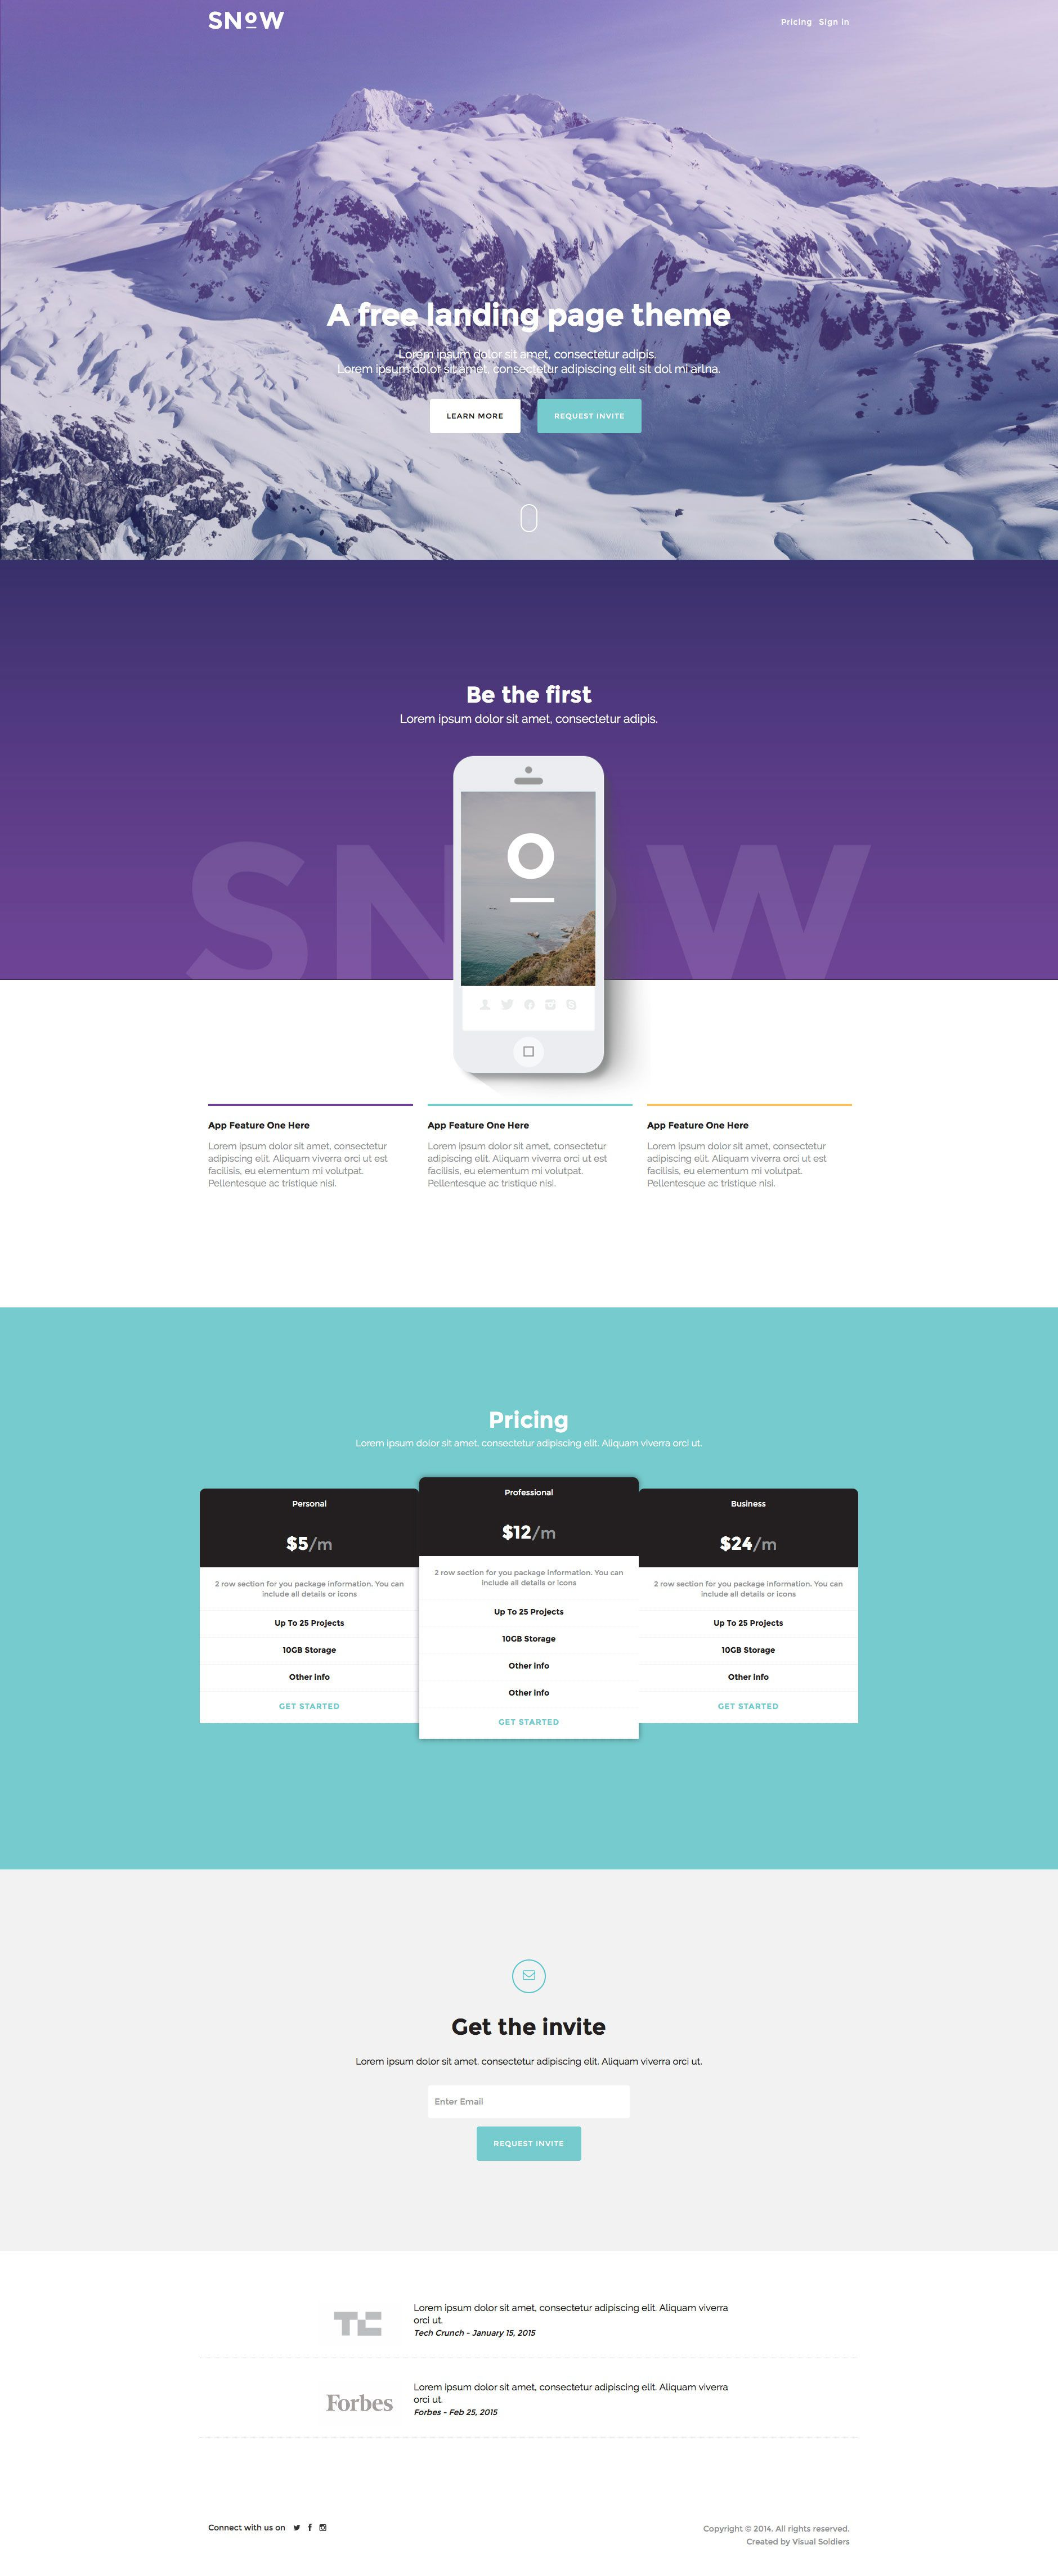 008 Stunning Product Website Template Html Free Download Image  With CsFull